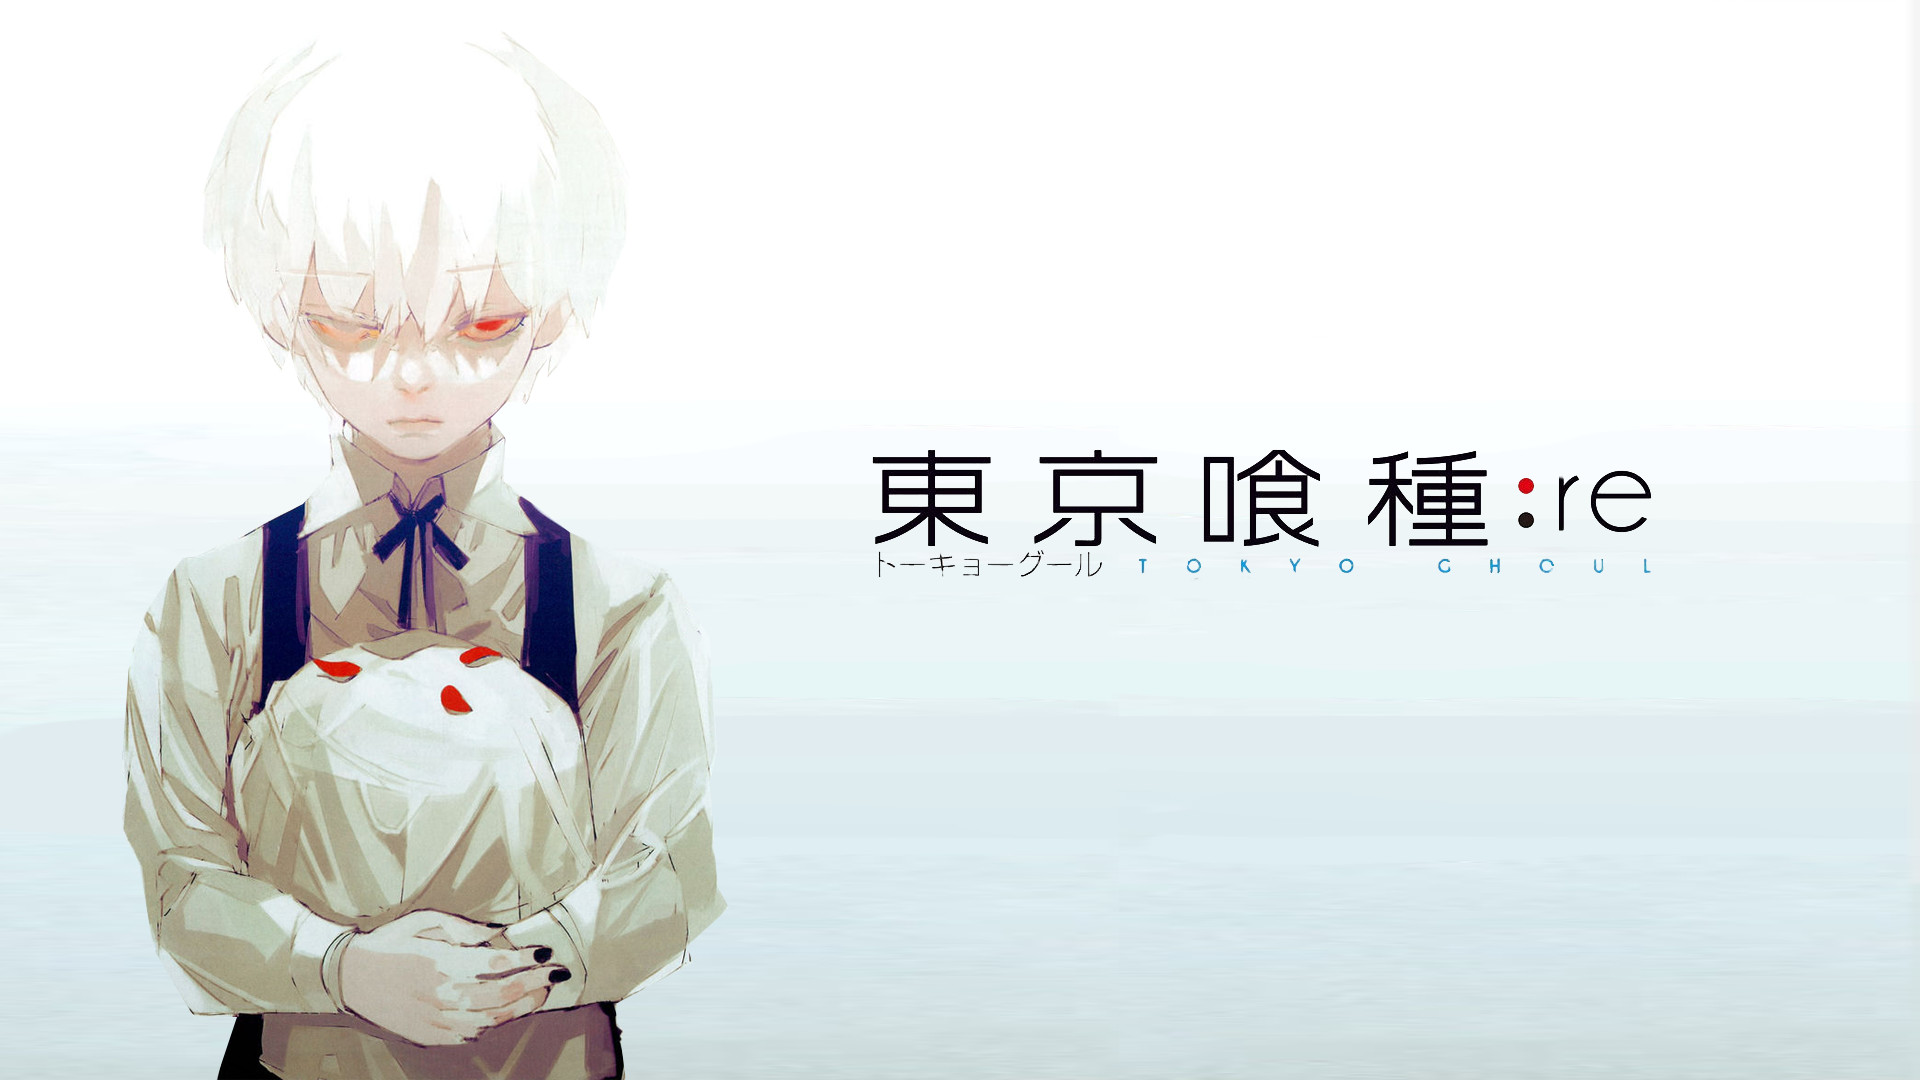 Dowload Walpaper Anime Tokyo Ghoul 2019: Tokyo Ghoul Re Wallpaper (83+ Images